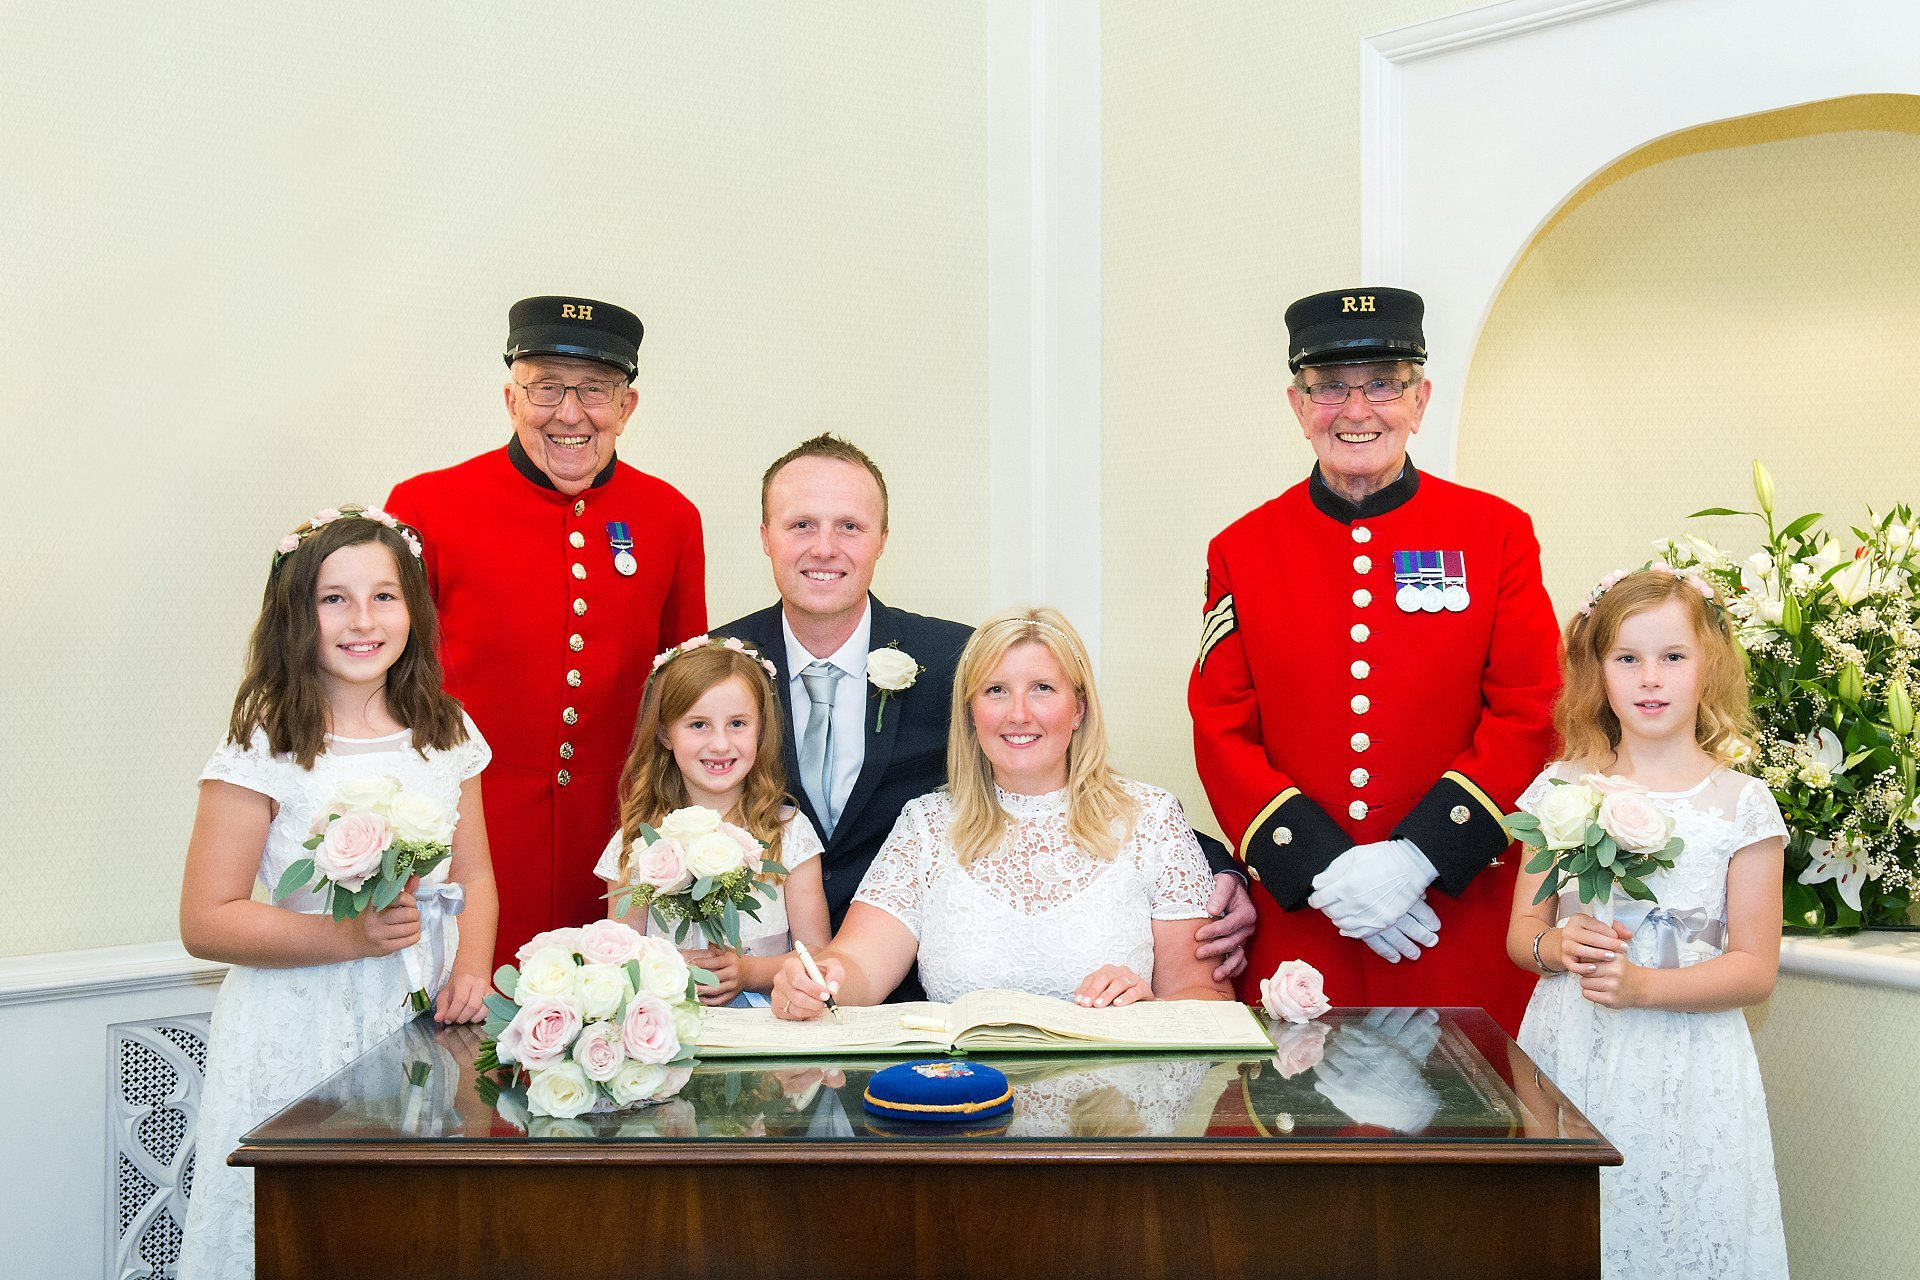 Family Wedding Photography Chelsea Town Hall by experienced, professional wedding photographer Emma Duggan here showing the couple, their three daughters and two Chelsea Pensioners